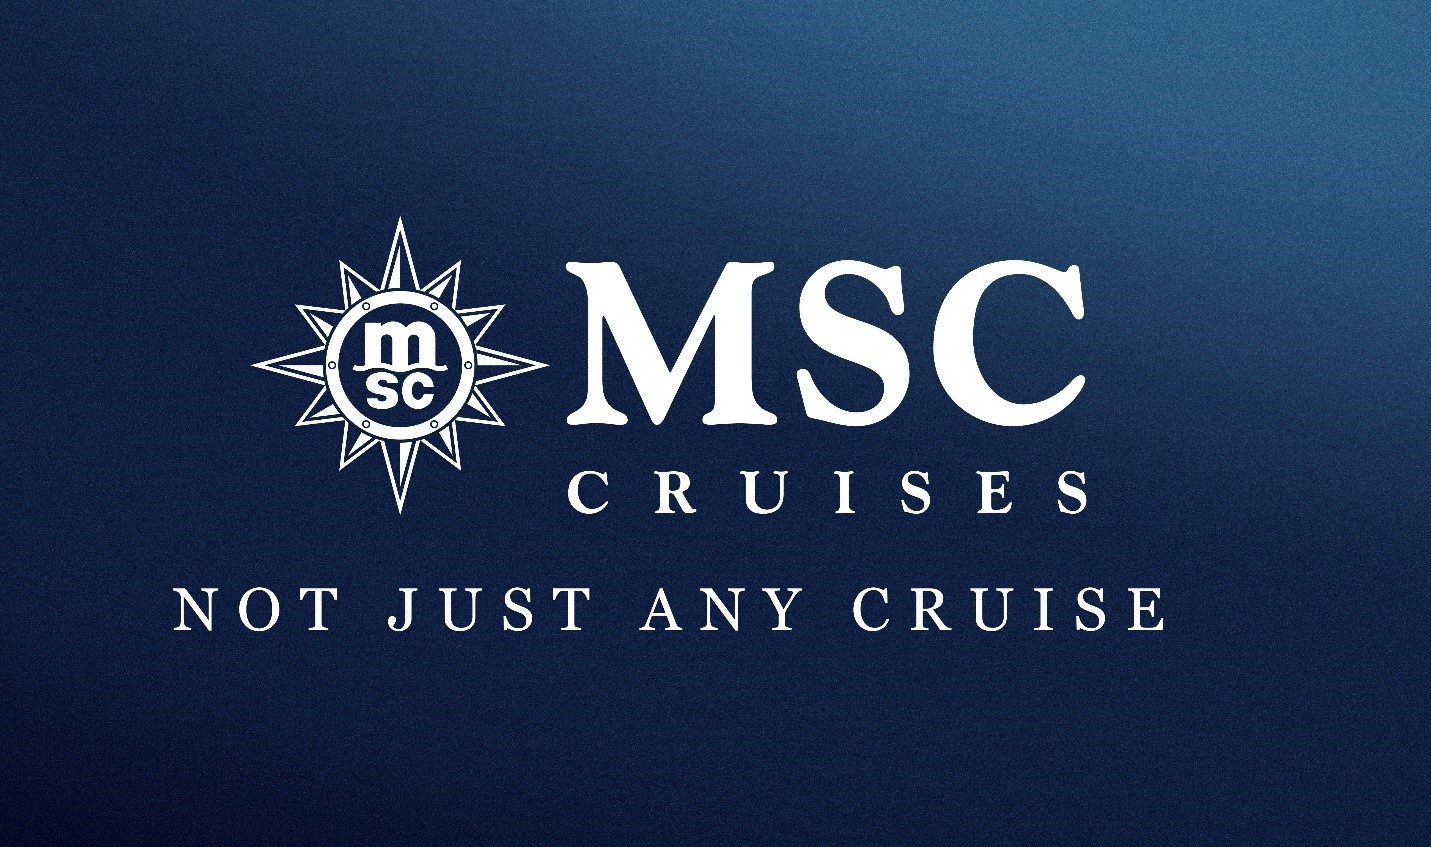 https://0201.nccdn.net/1_2/000/000/0bb/230/msc_cruises-logo-Small-1431x847.jpg